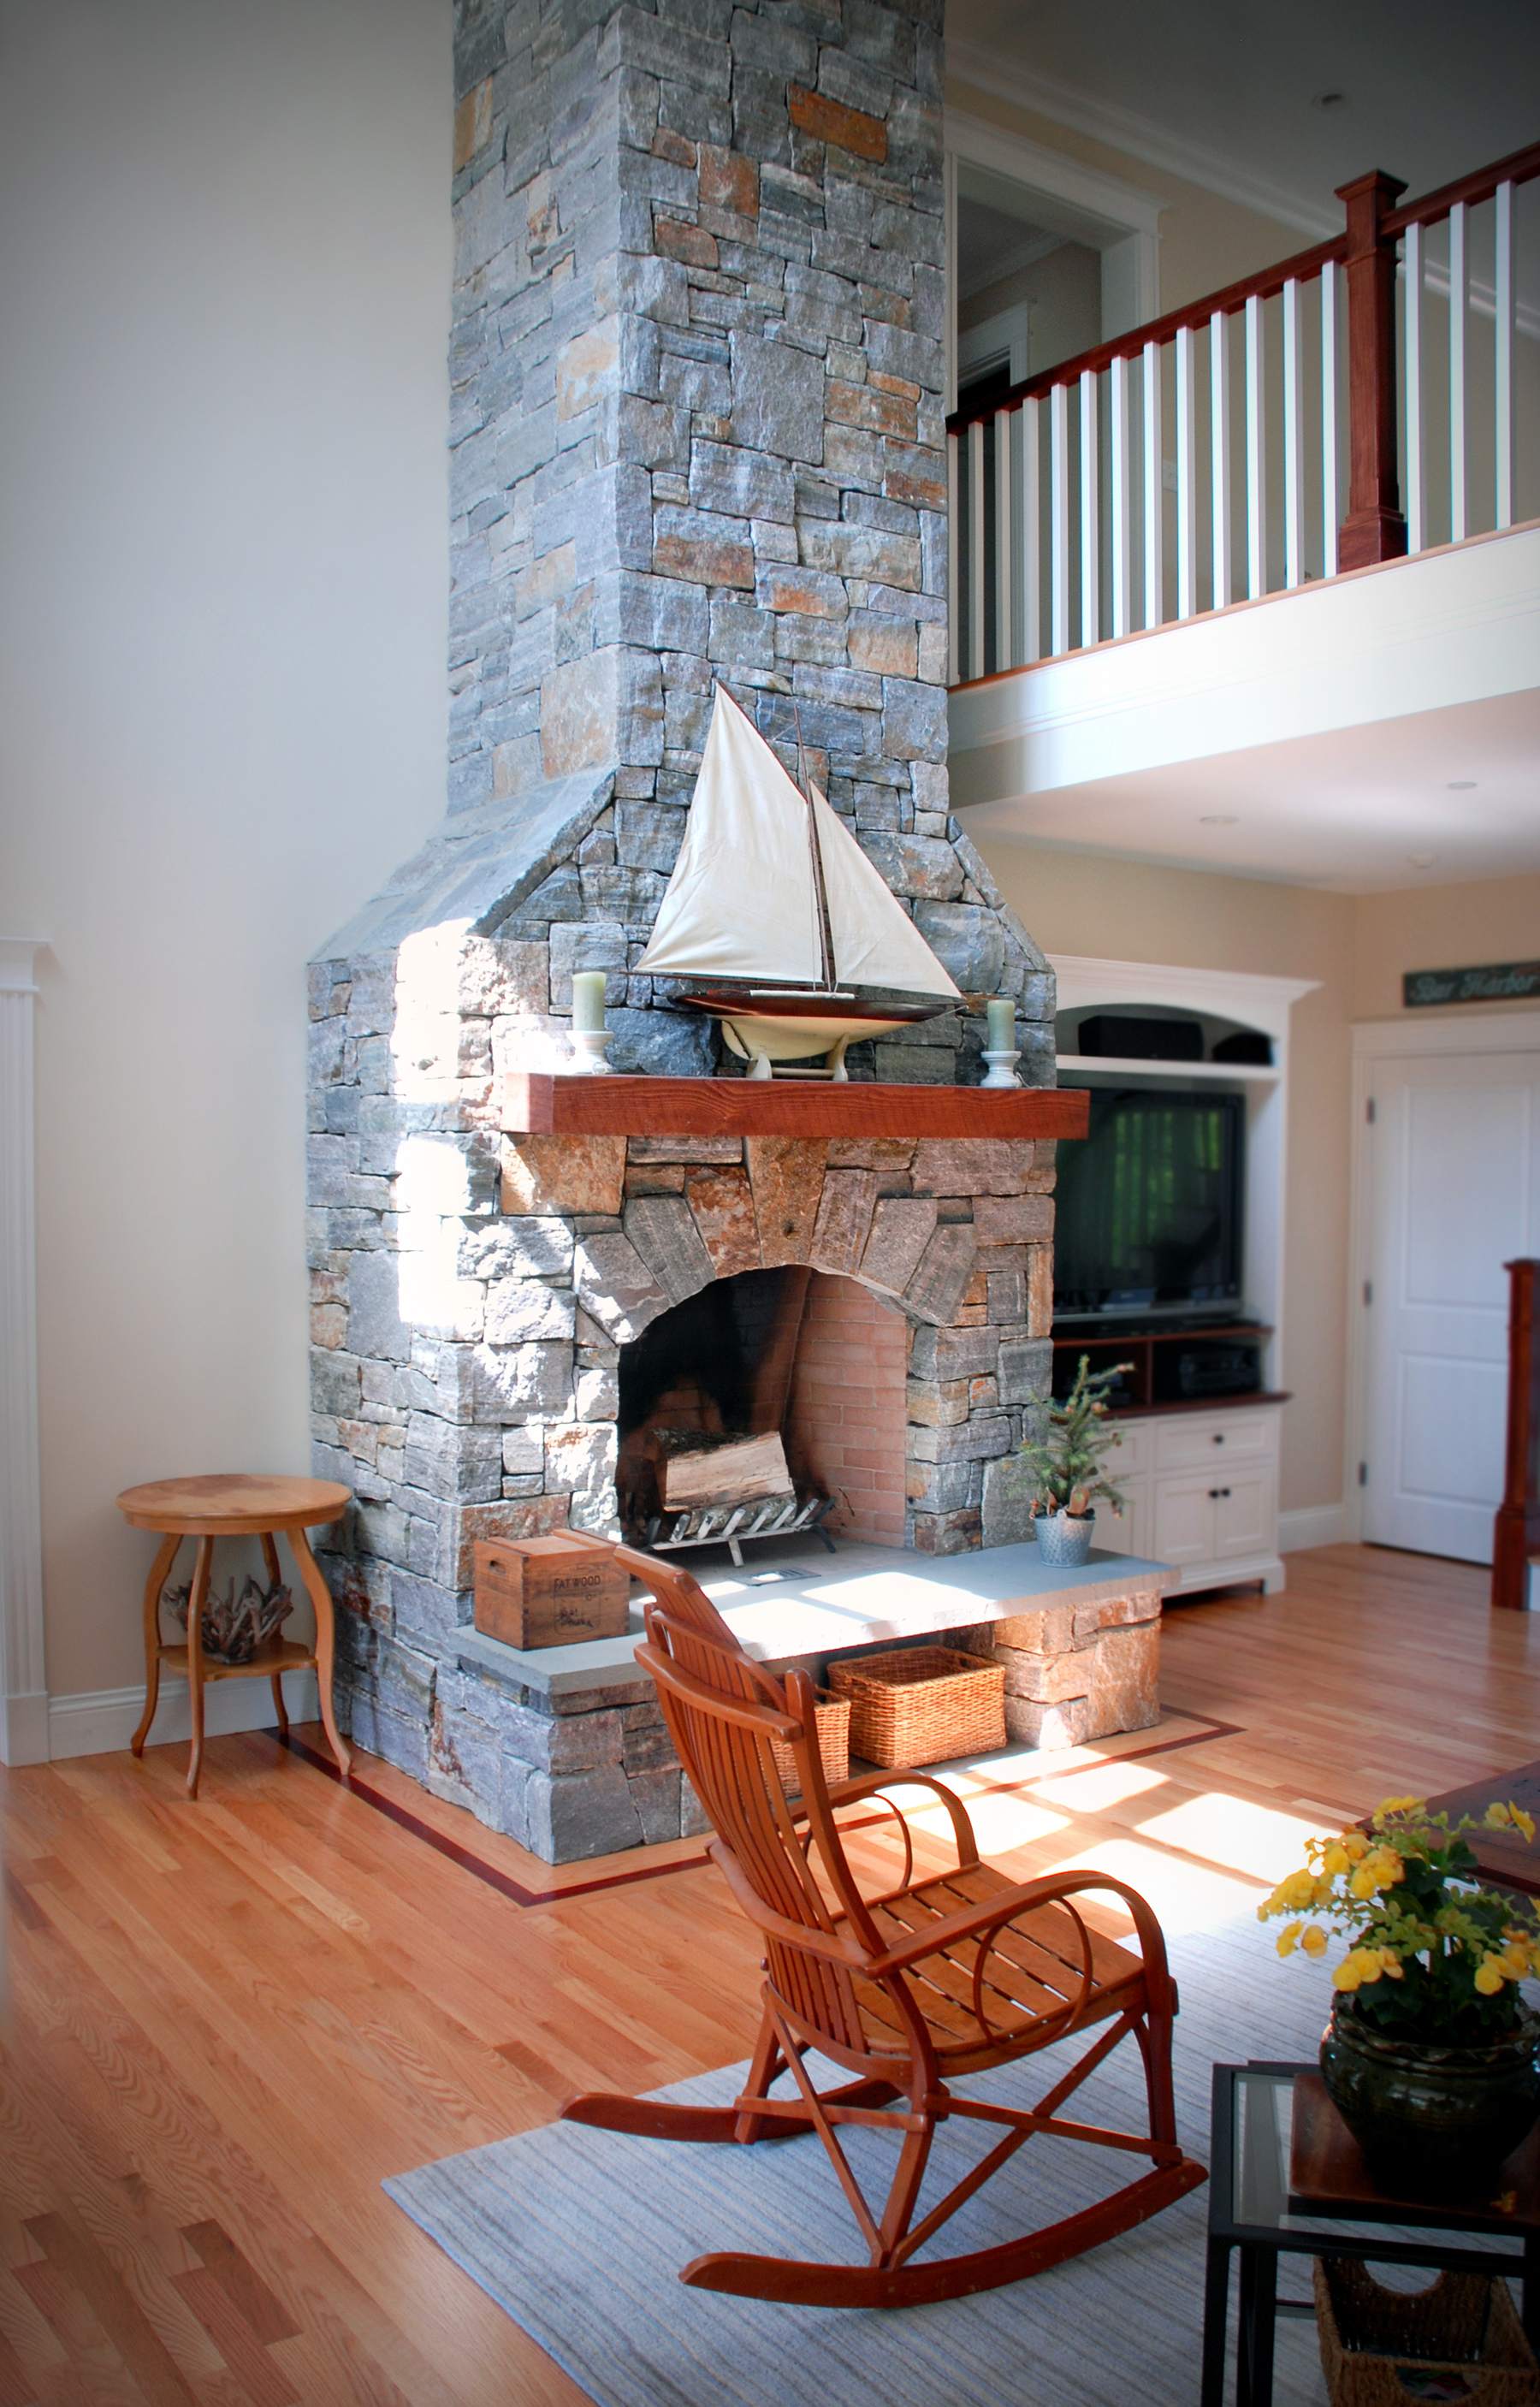 stone fireplace with model sailboat